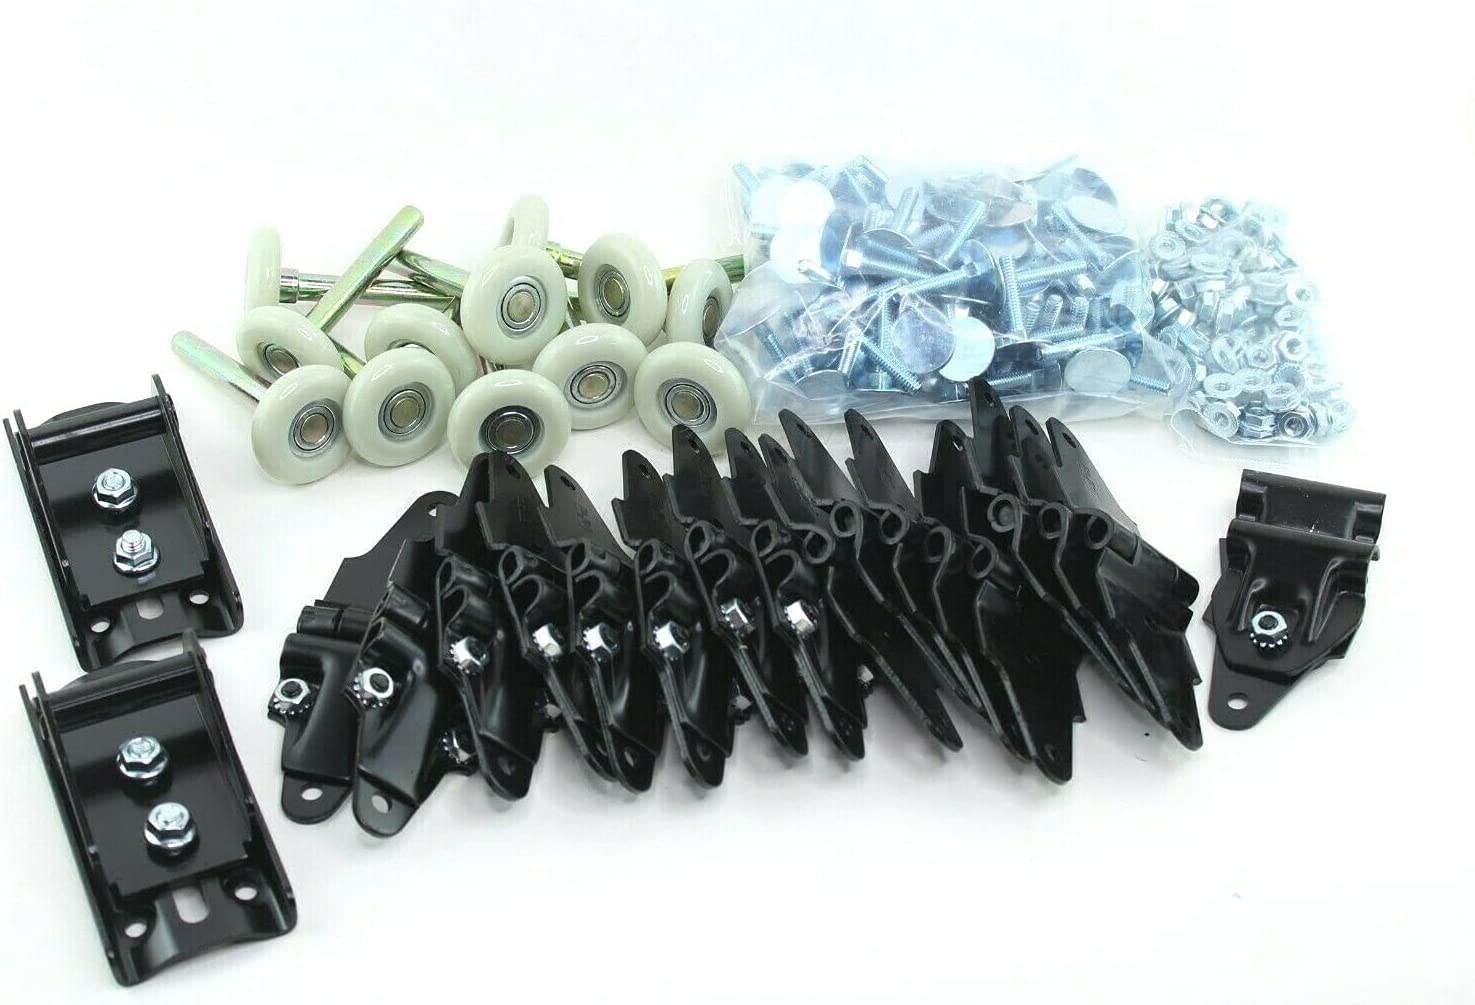 Whiting Style Overhead Cheap super Complete Free Shipping special price Truck Door Hinge Roller Kit up and - Roll